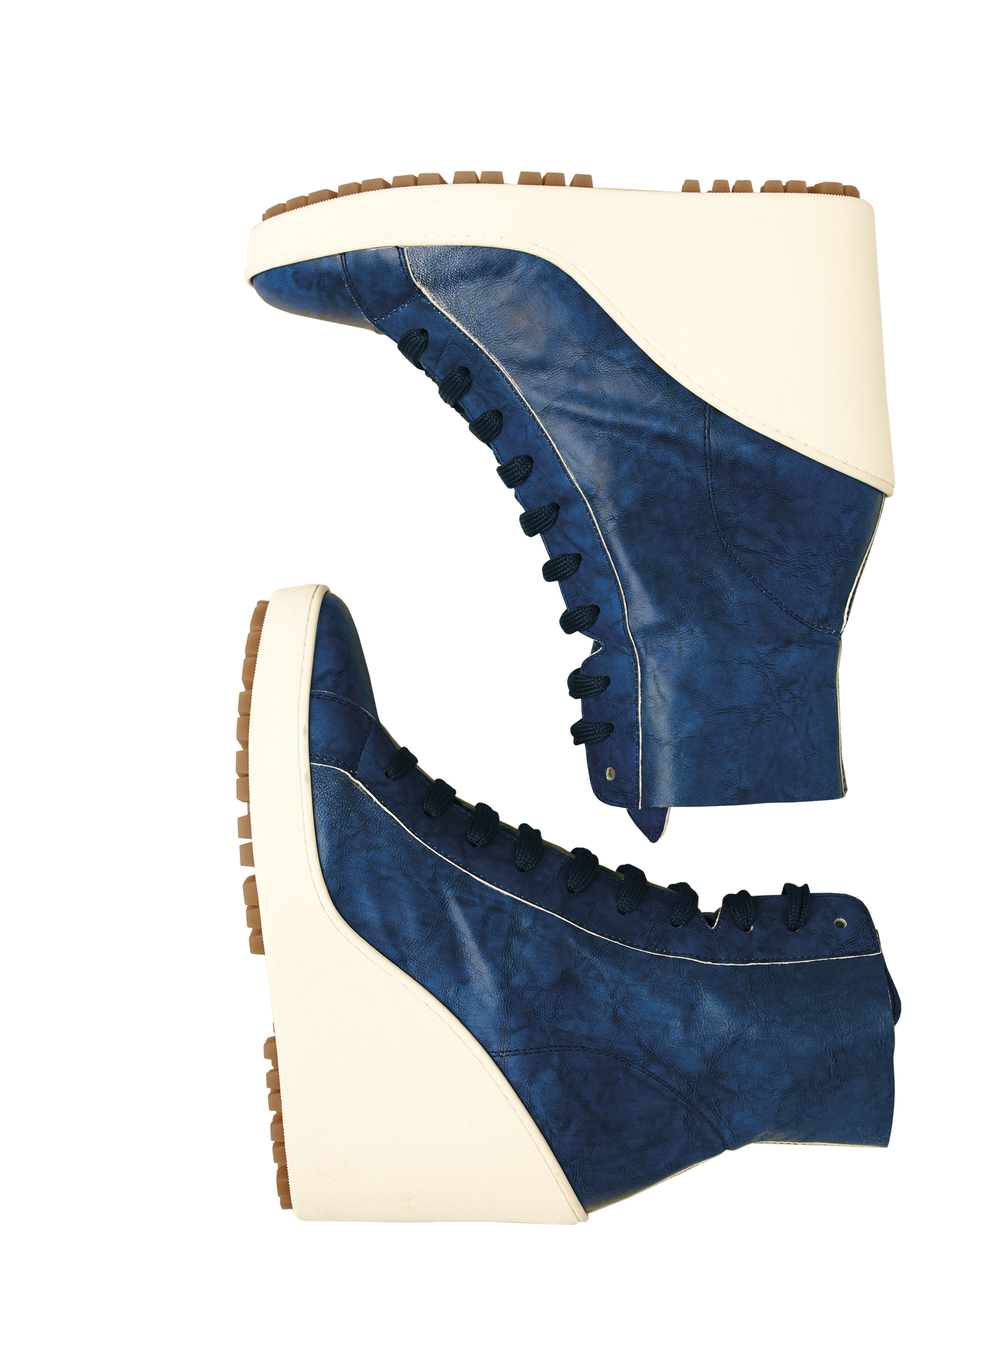 25-signature wedge sneakers in royal blue leather.jpg